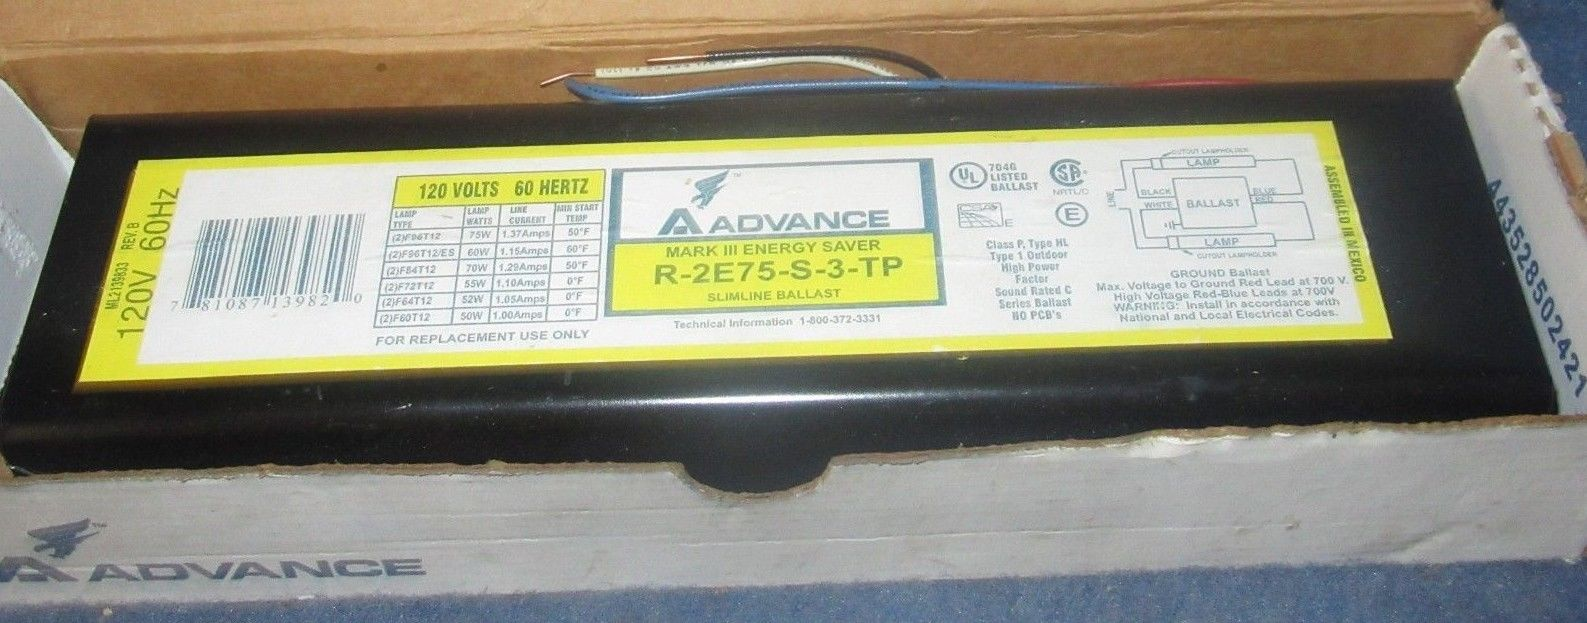 Advance Mark III Energy Saver Fluorescent Light Slimline Ballast R-2E75-S-3-TP